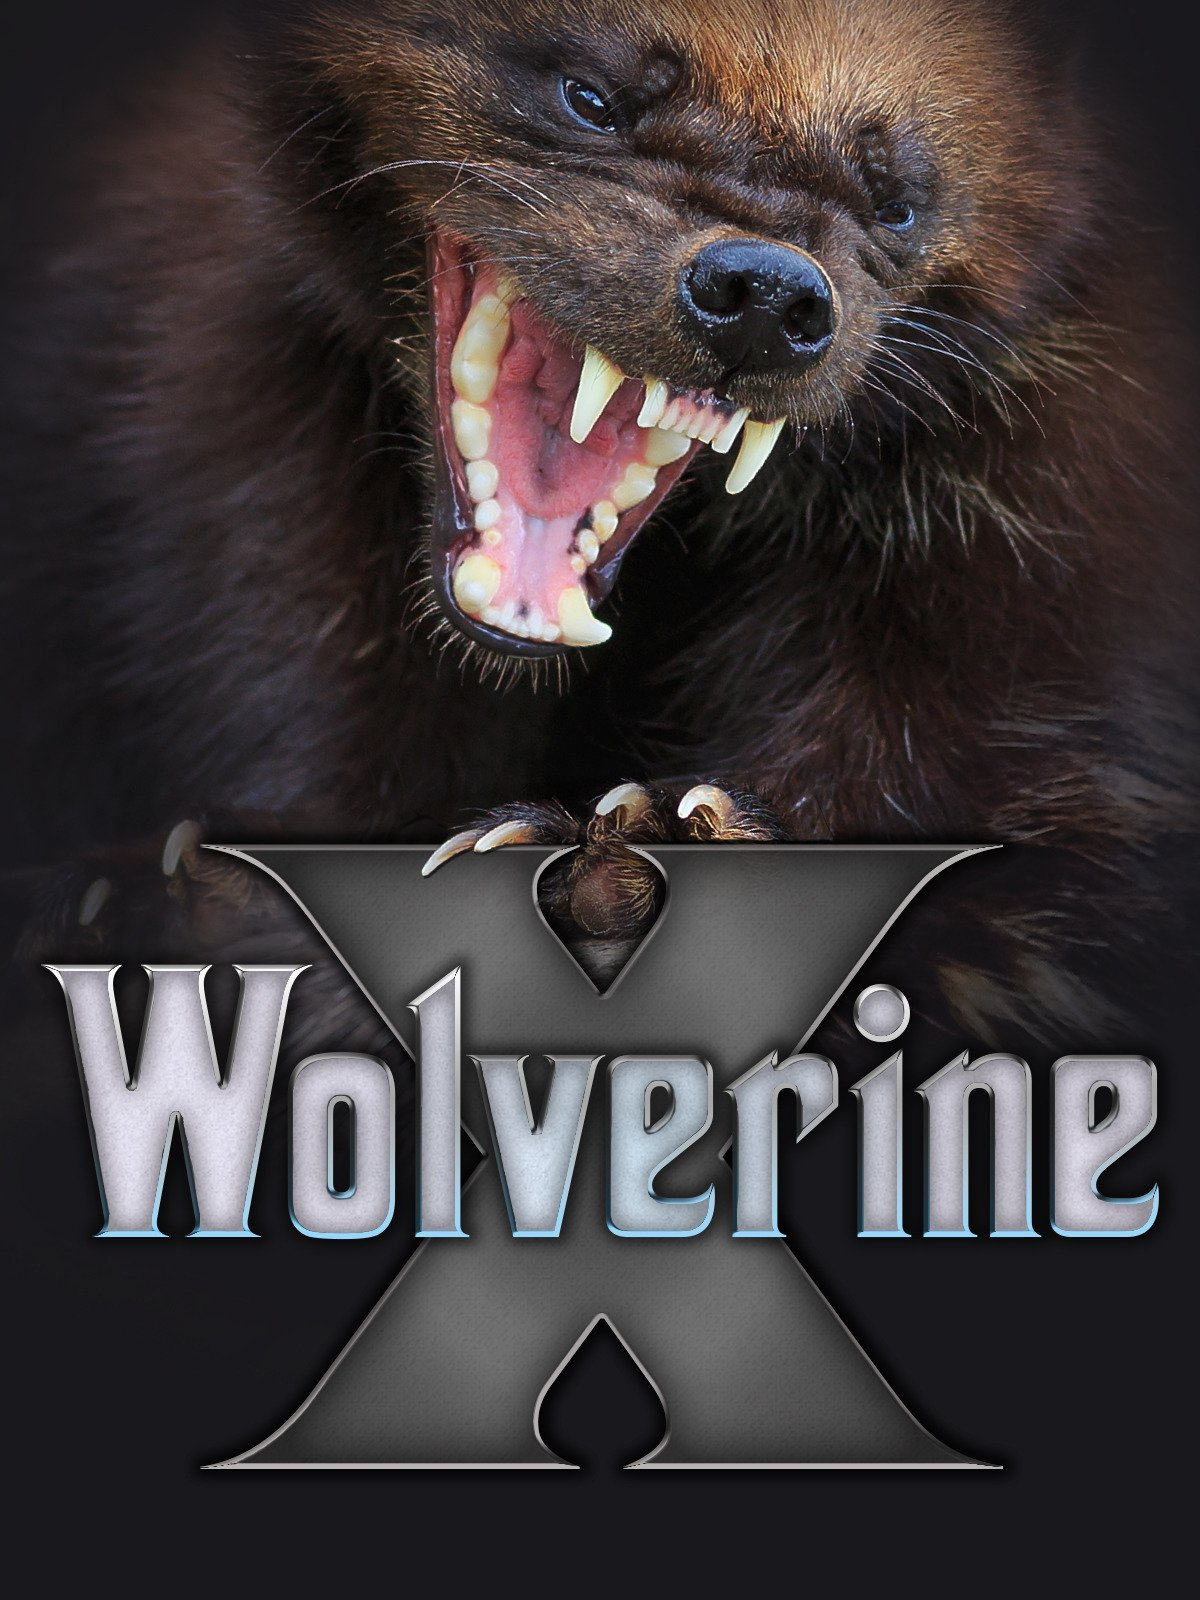 Amazon.com: Wolverine X: Oliver Goetzl, Carl Hall: Amazon Digital ...